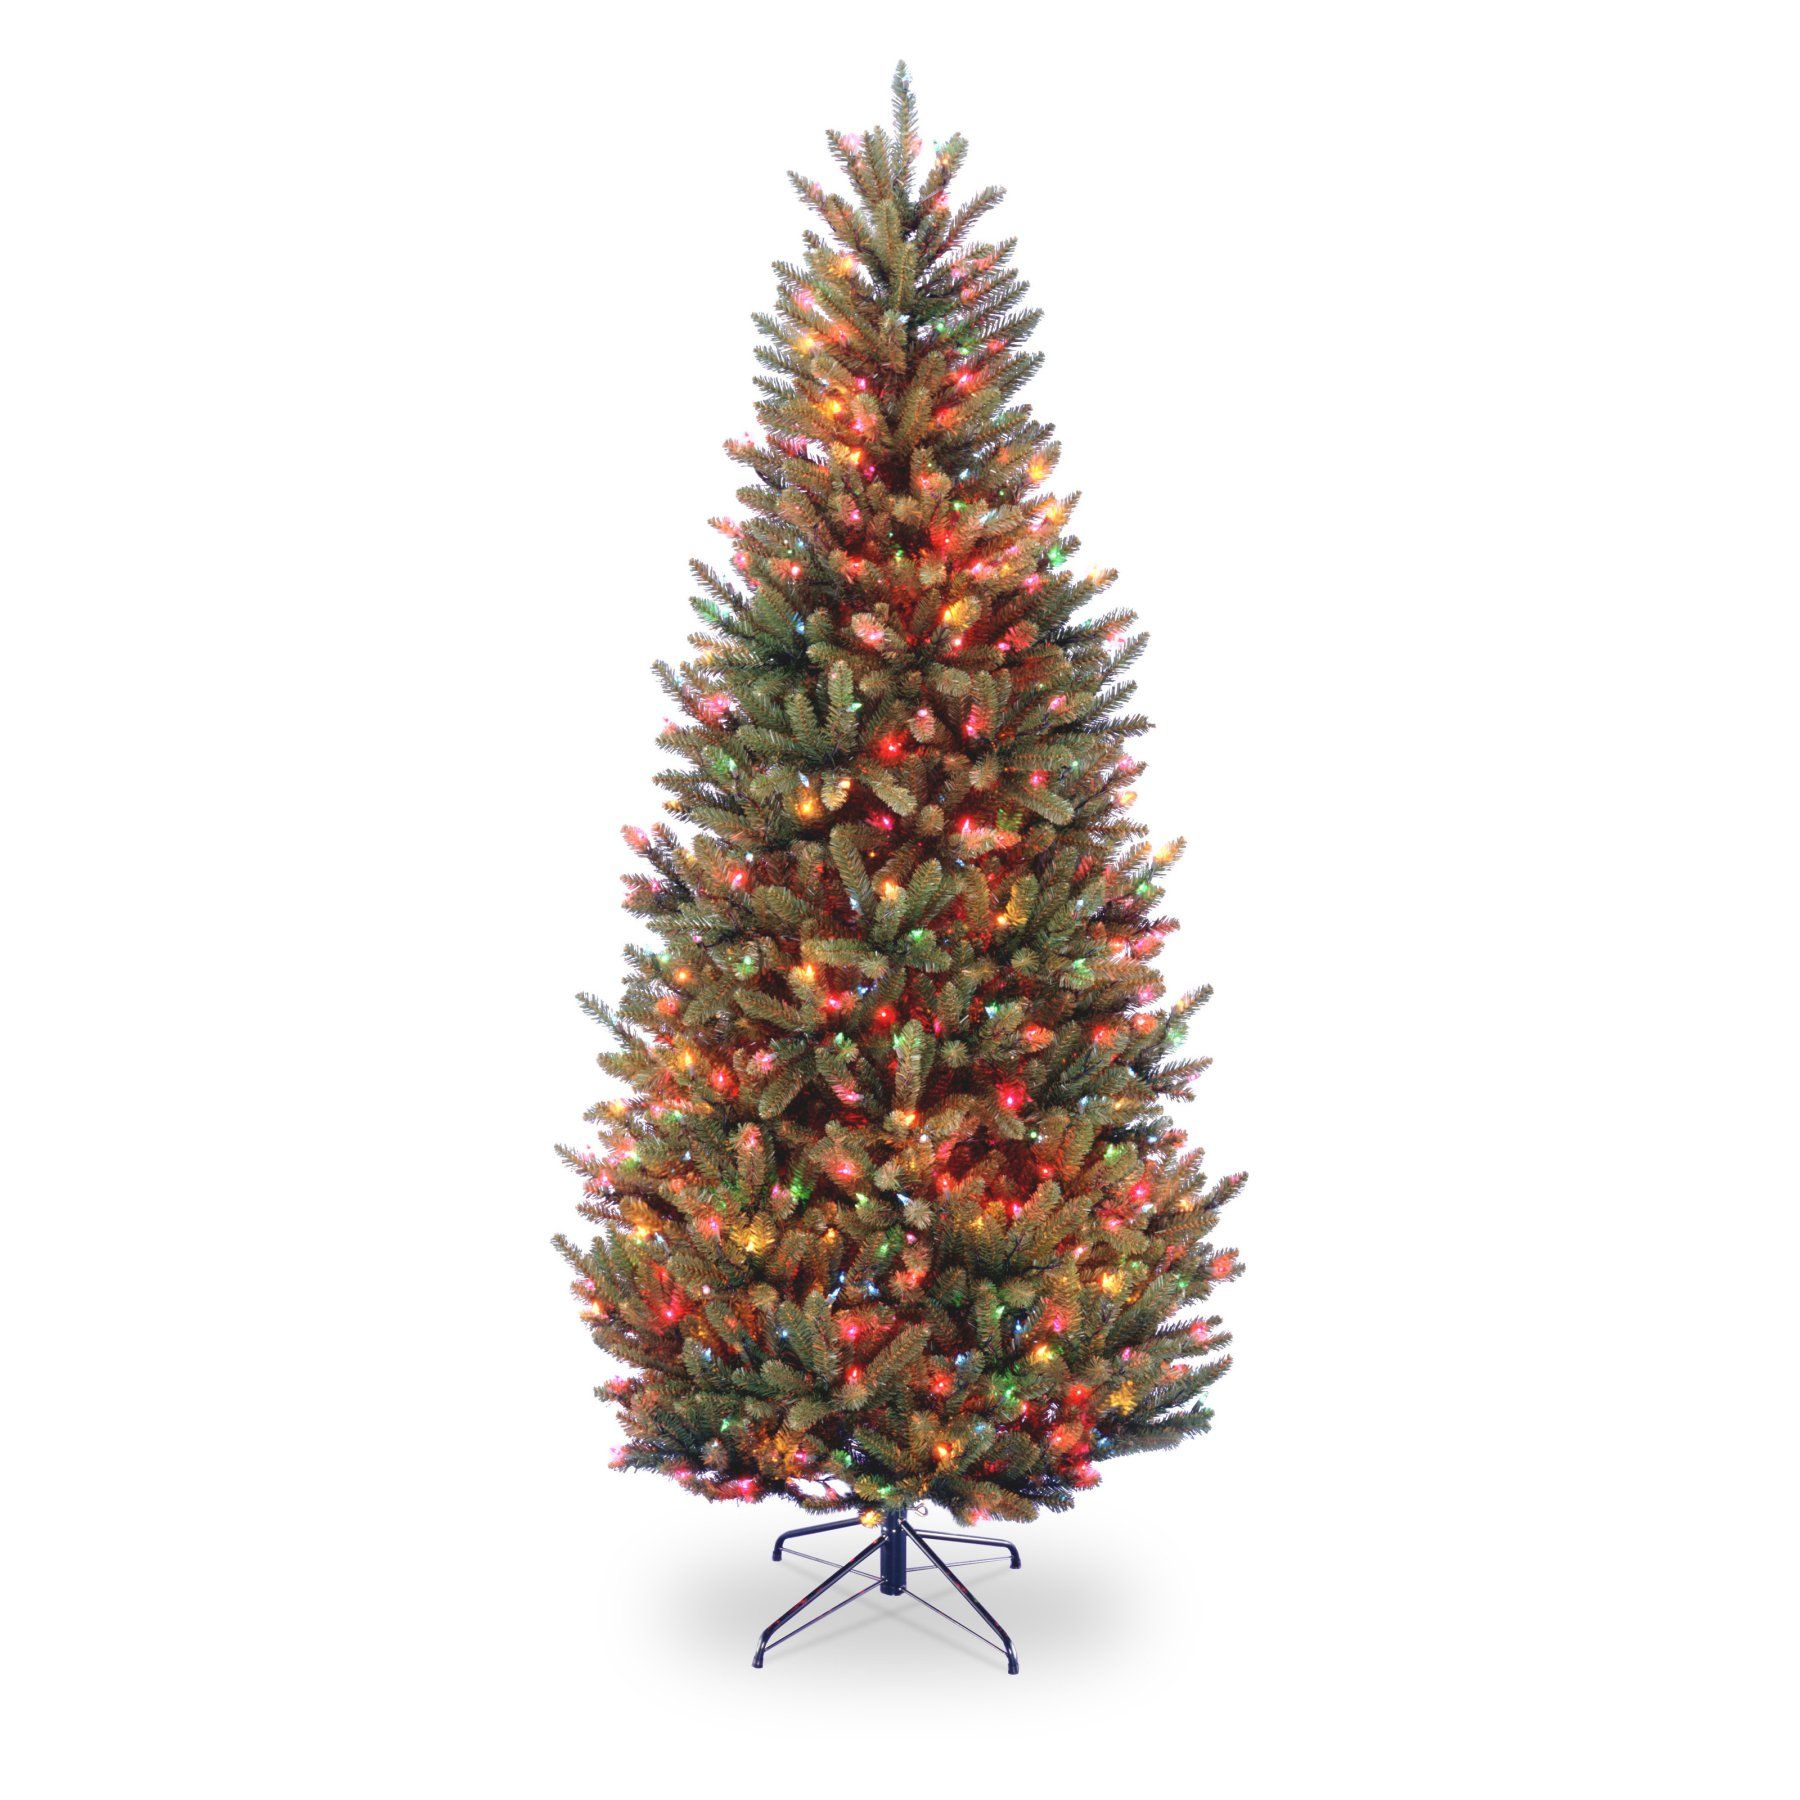 Best Deal On Artificial Christmas Trees: 7.5 Ft. Natural Fraser Slim Fir Hinged Pre-Lit Christmas